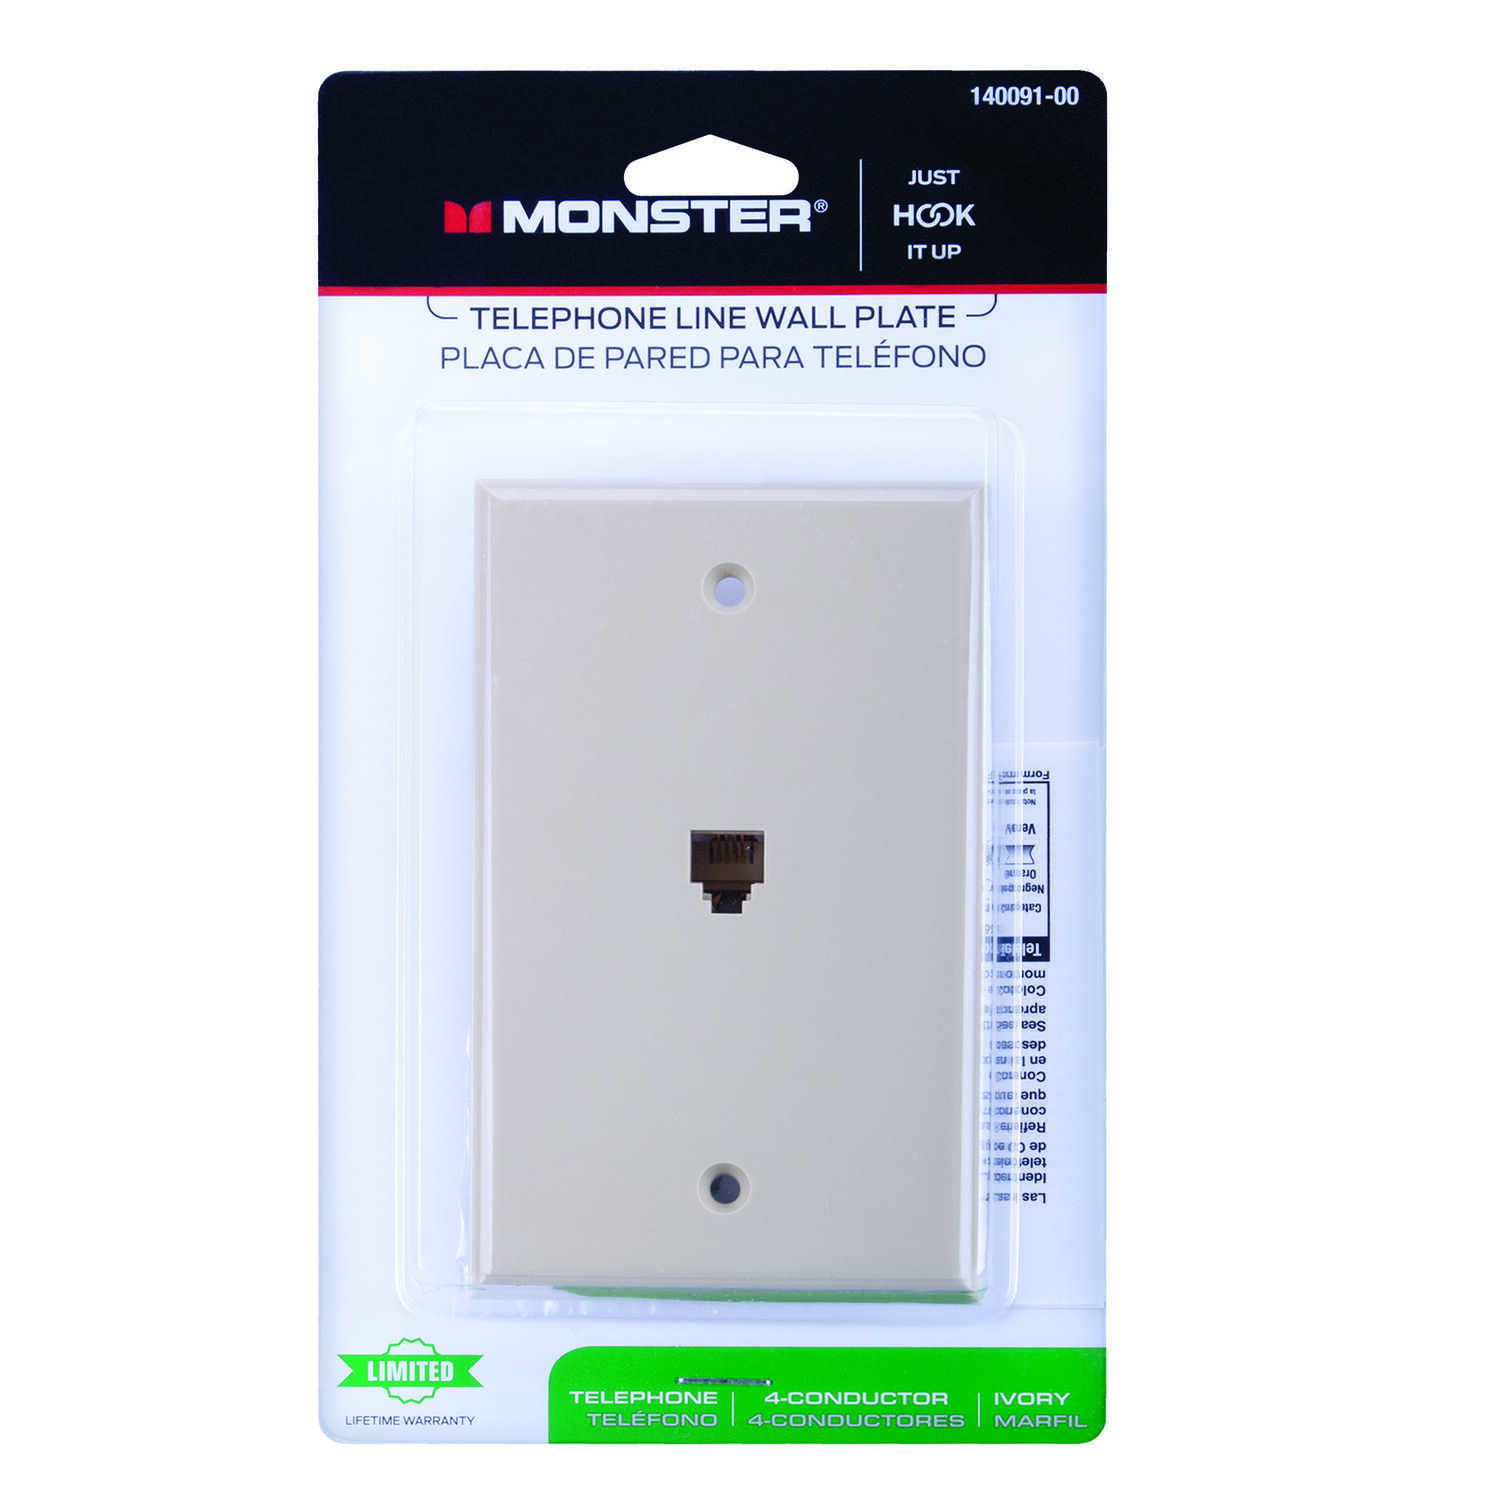 Monster Cable  Just Hook It Up  Ivory  1 gang Plastic  Telephone  Wall Plate  1 pk